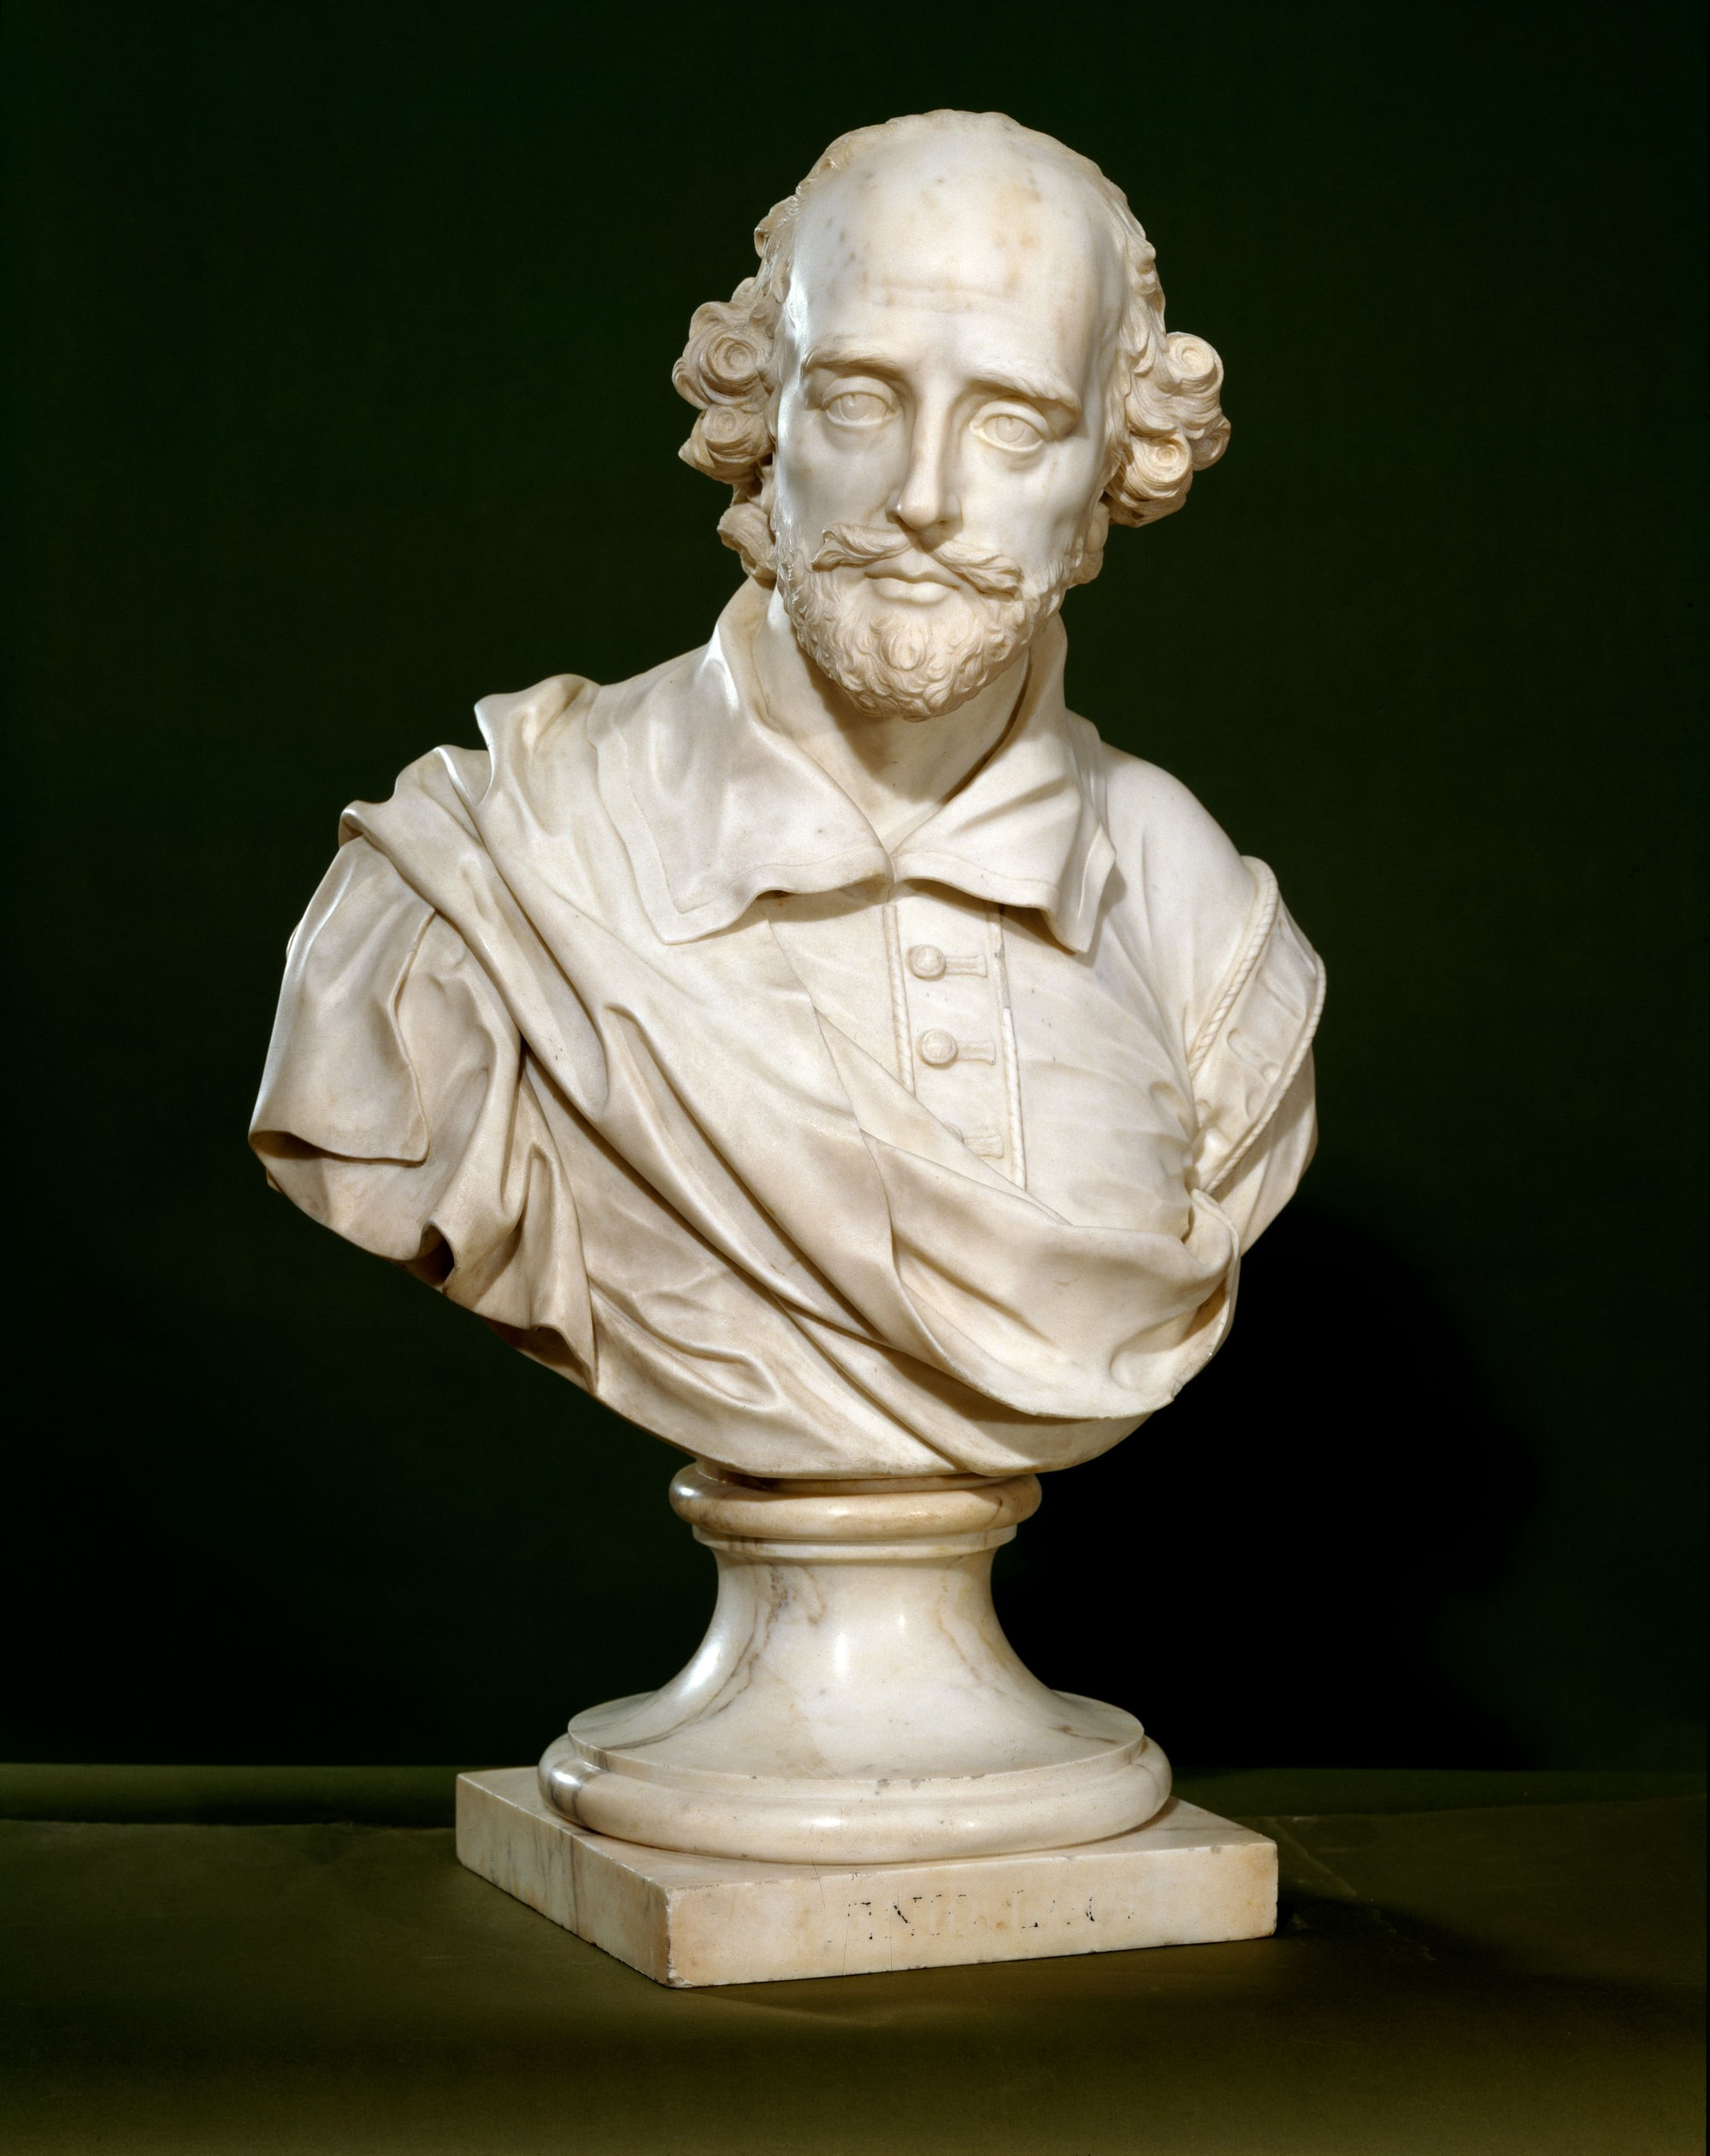 Bust of William Shakespeare (1564-1616), 1760. Sculptor: John Michael Rysbrack